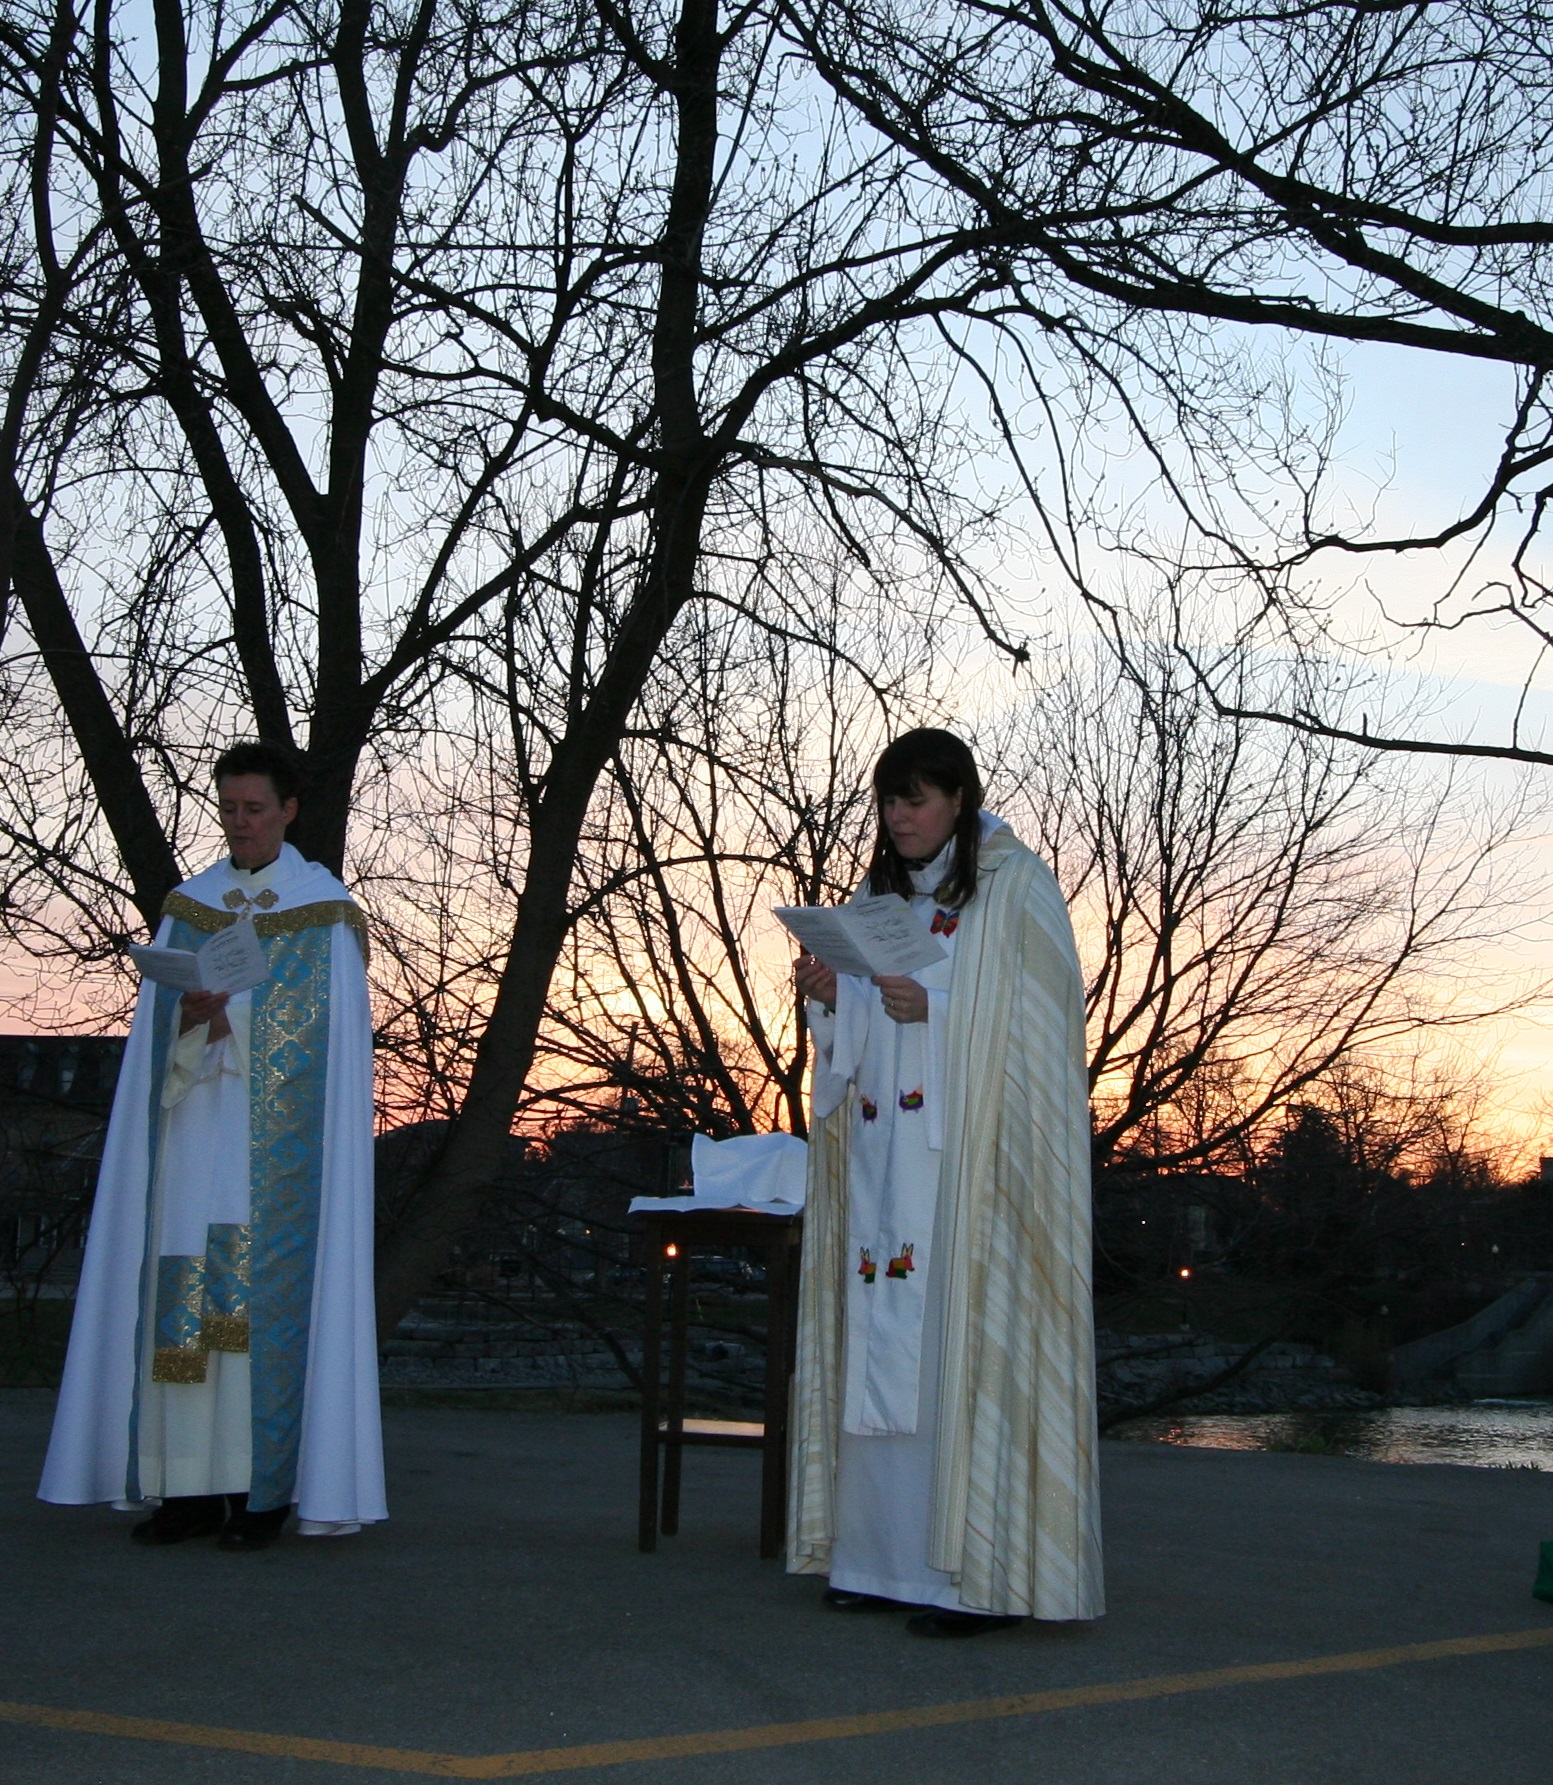 Easter Sunrise Service, priests performing service